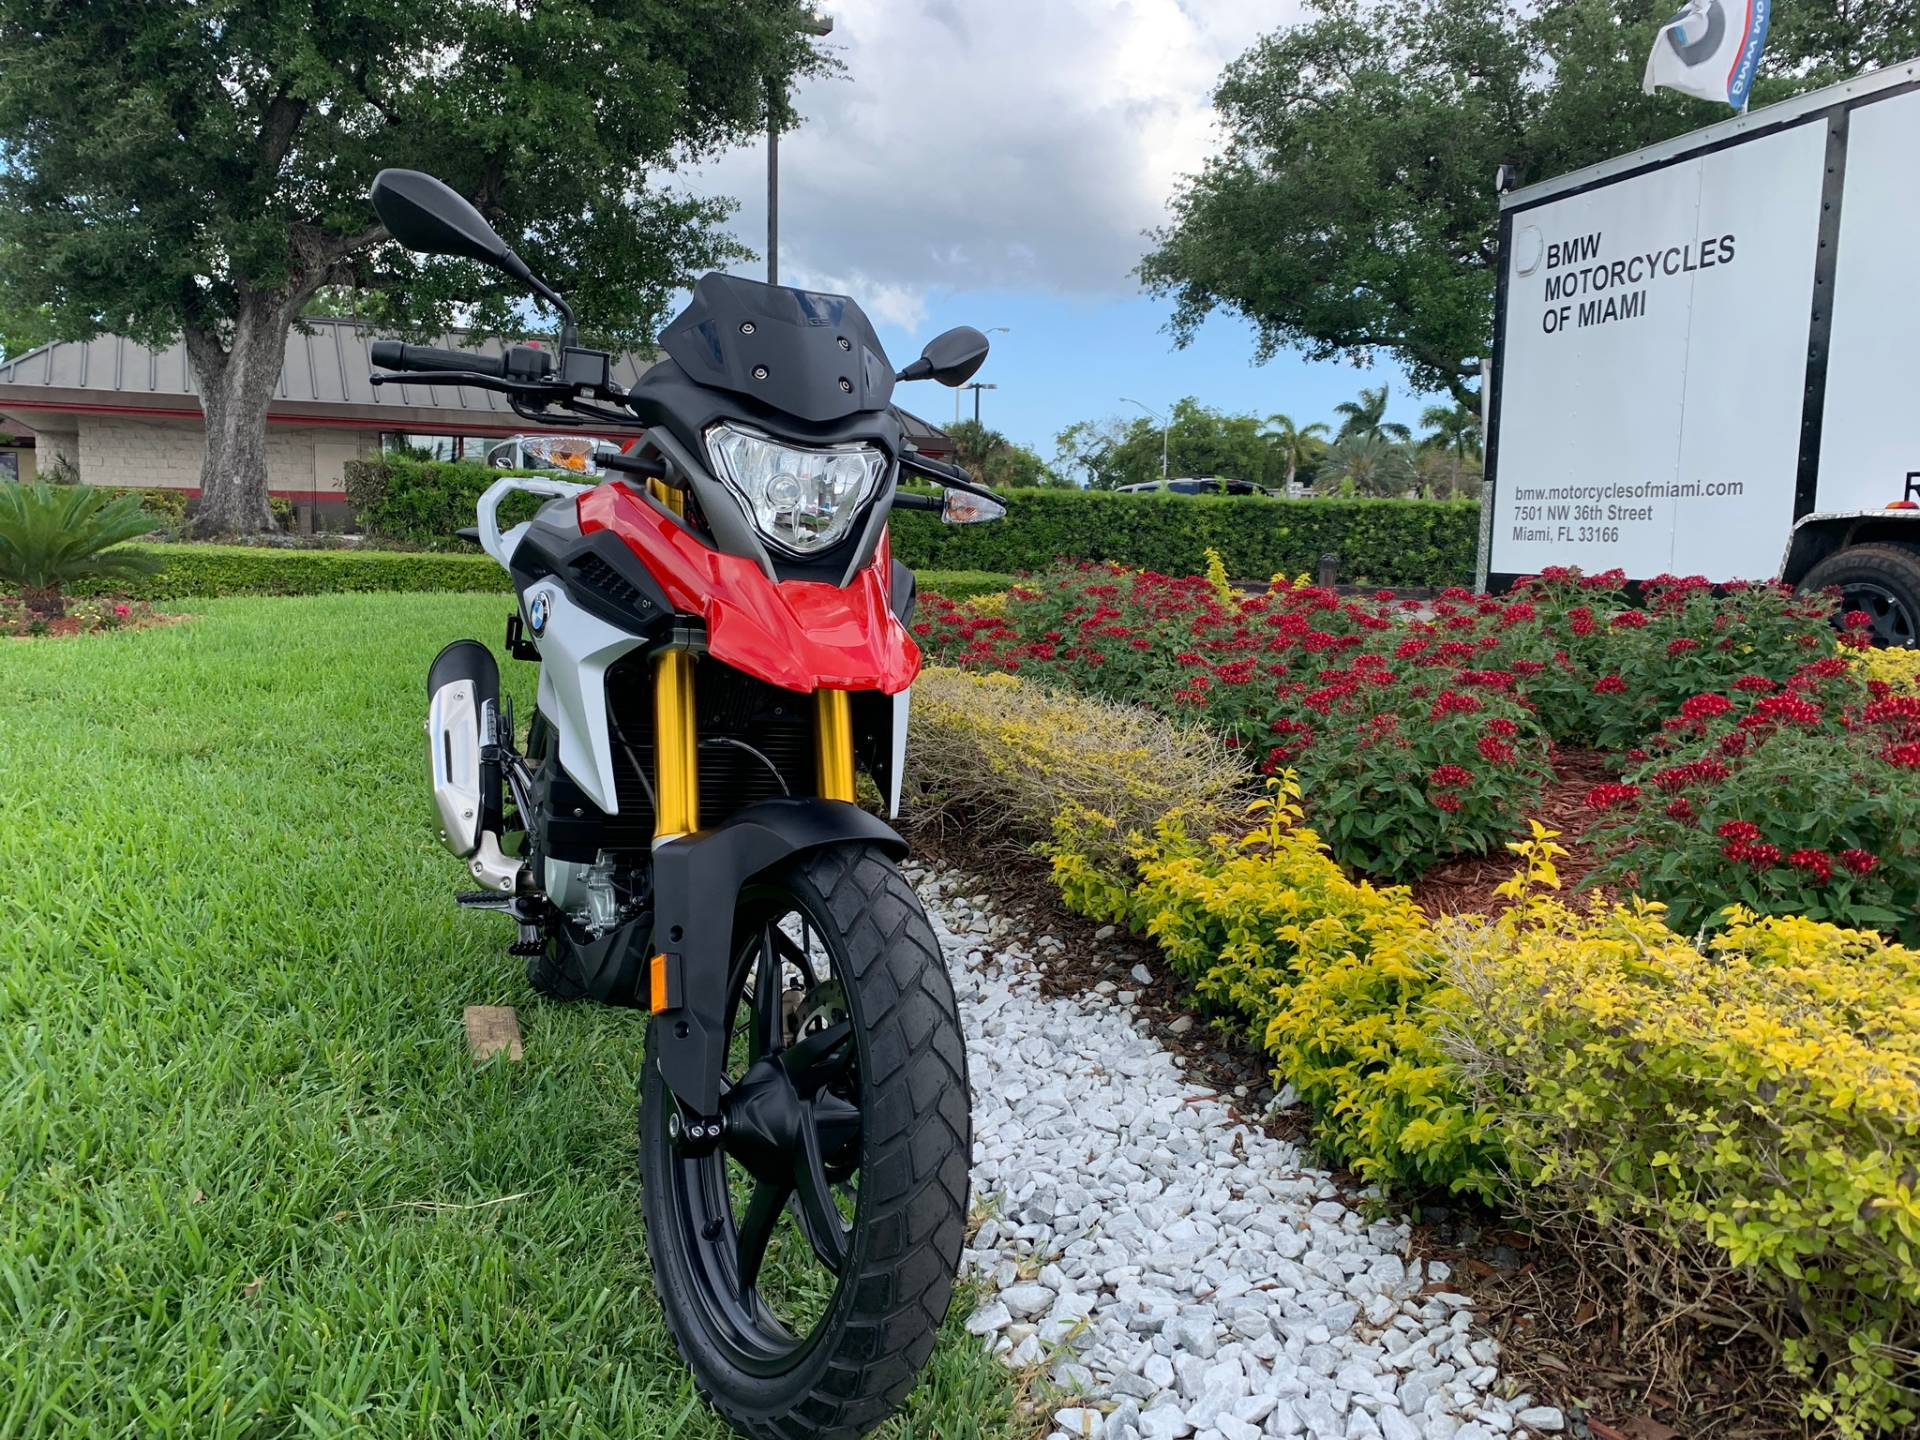 New 2019 BMW G 310 GS for sale, BMW G 310GS for sale, BMW Motorcycle GS, new BMW GS, Spirit of GS, BMW Motorcycles of Miami, Motorcycles of Miami, Motorcycles Miami, New Motorcycles, Used Motorcycles, pre-owned. #BMWMotorcyclesOfMiami #MotorcyclesOfMiami. - Photo 12